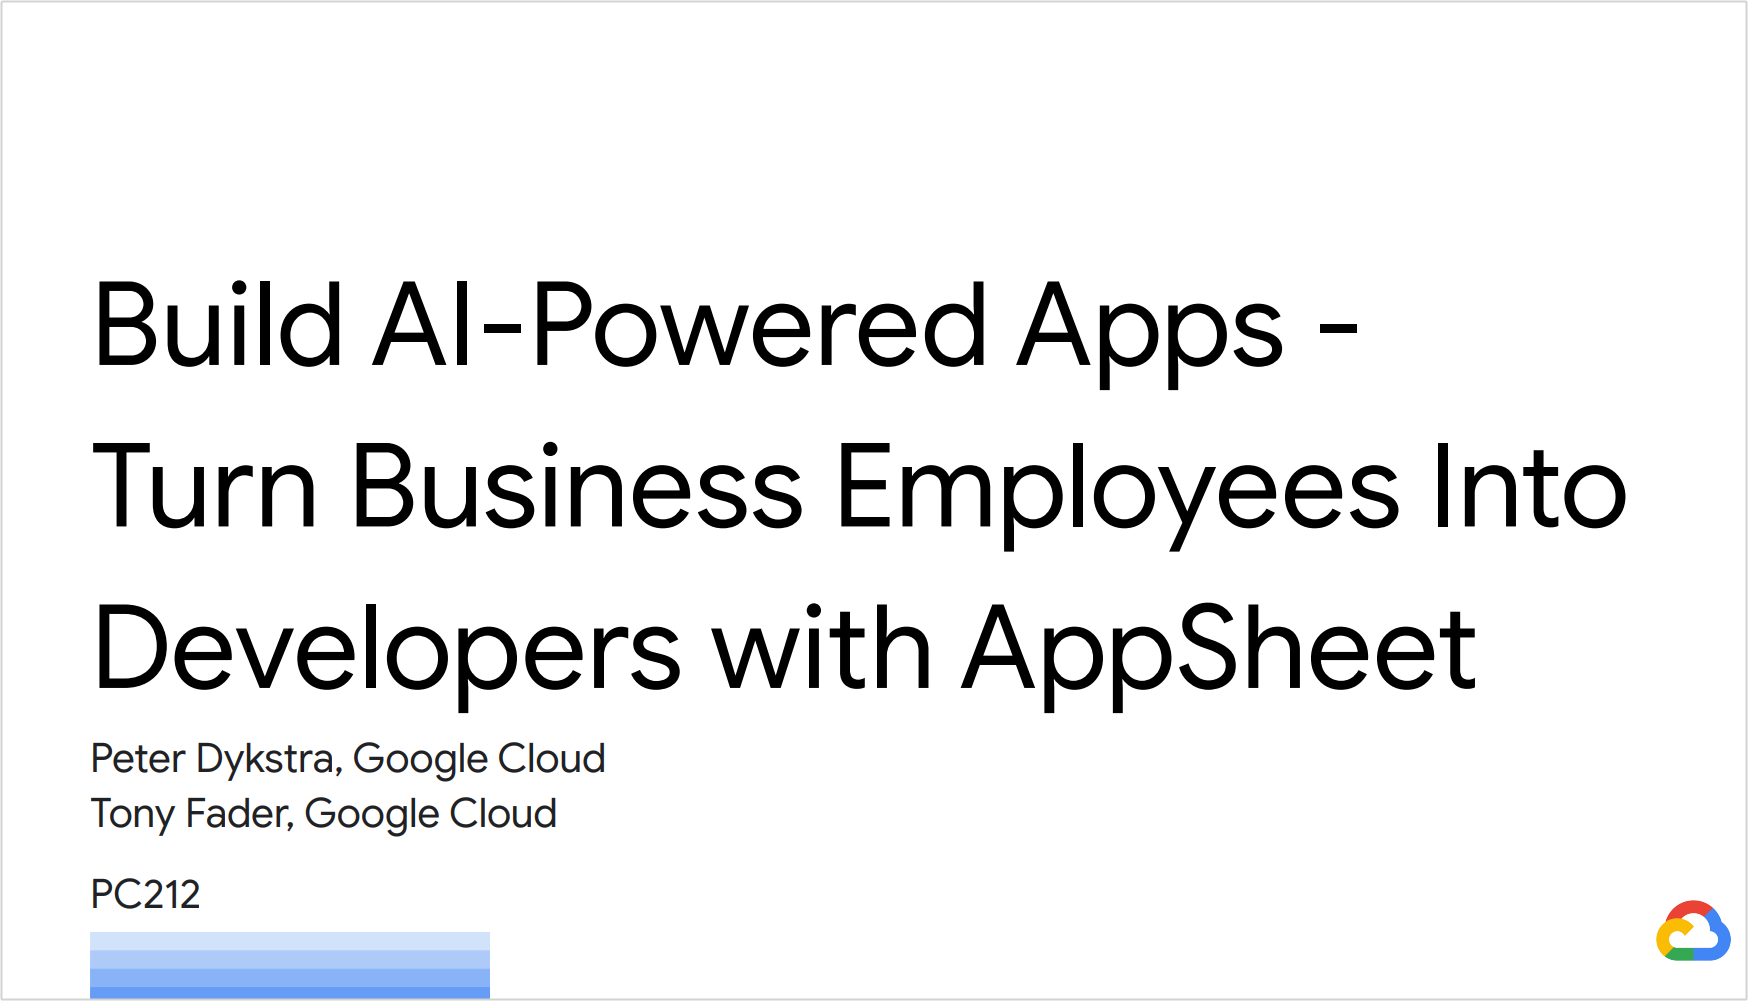 Build AI-Powered Apps - Turn Business Employees Into Developers with AppSheet